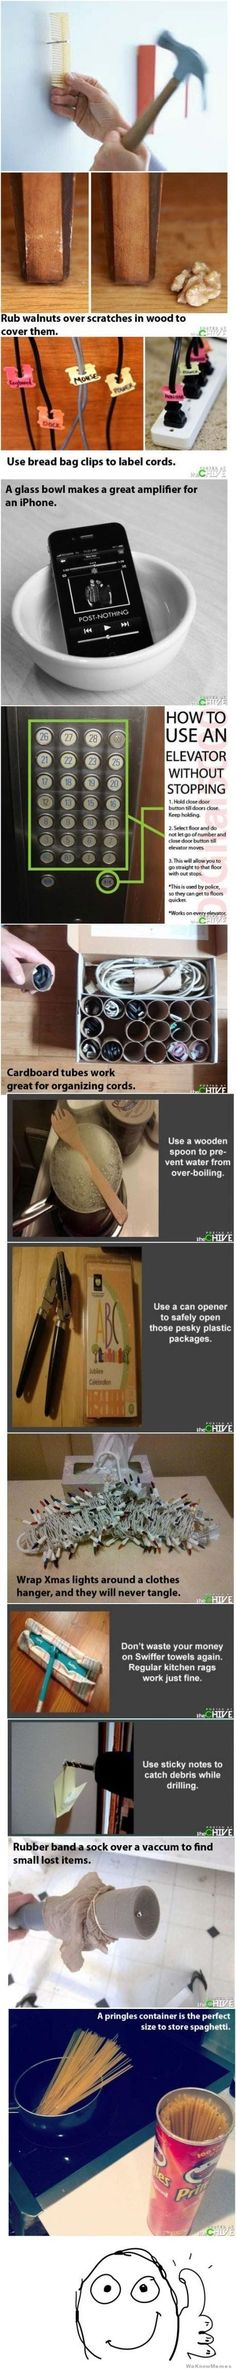 soo cool life-hacks! will try the one with the elevator! :D